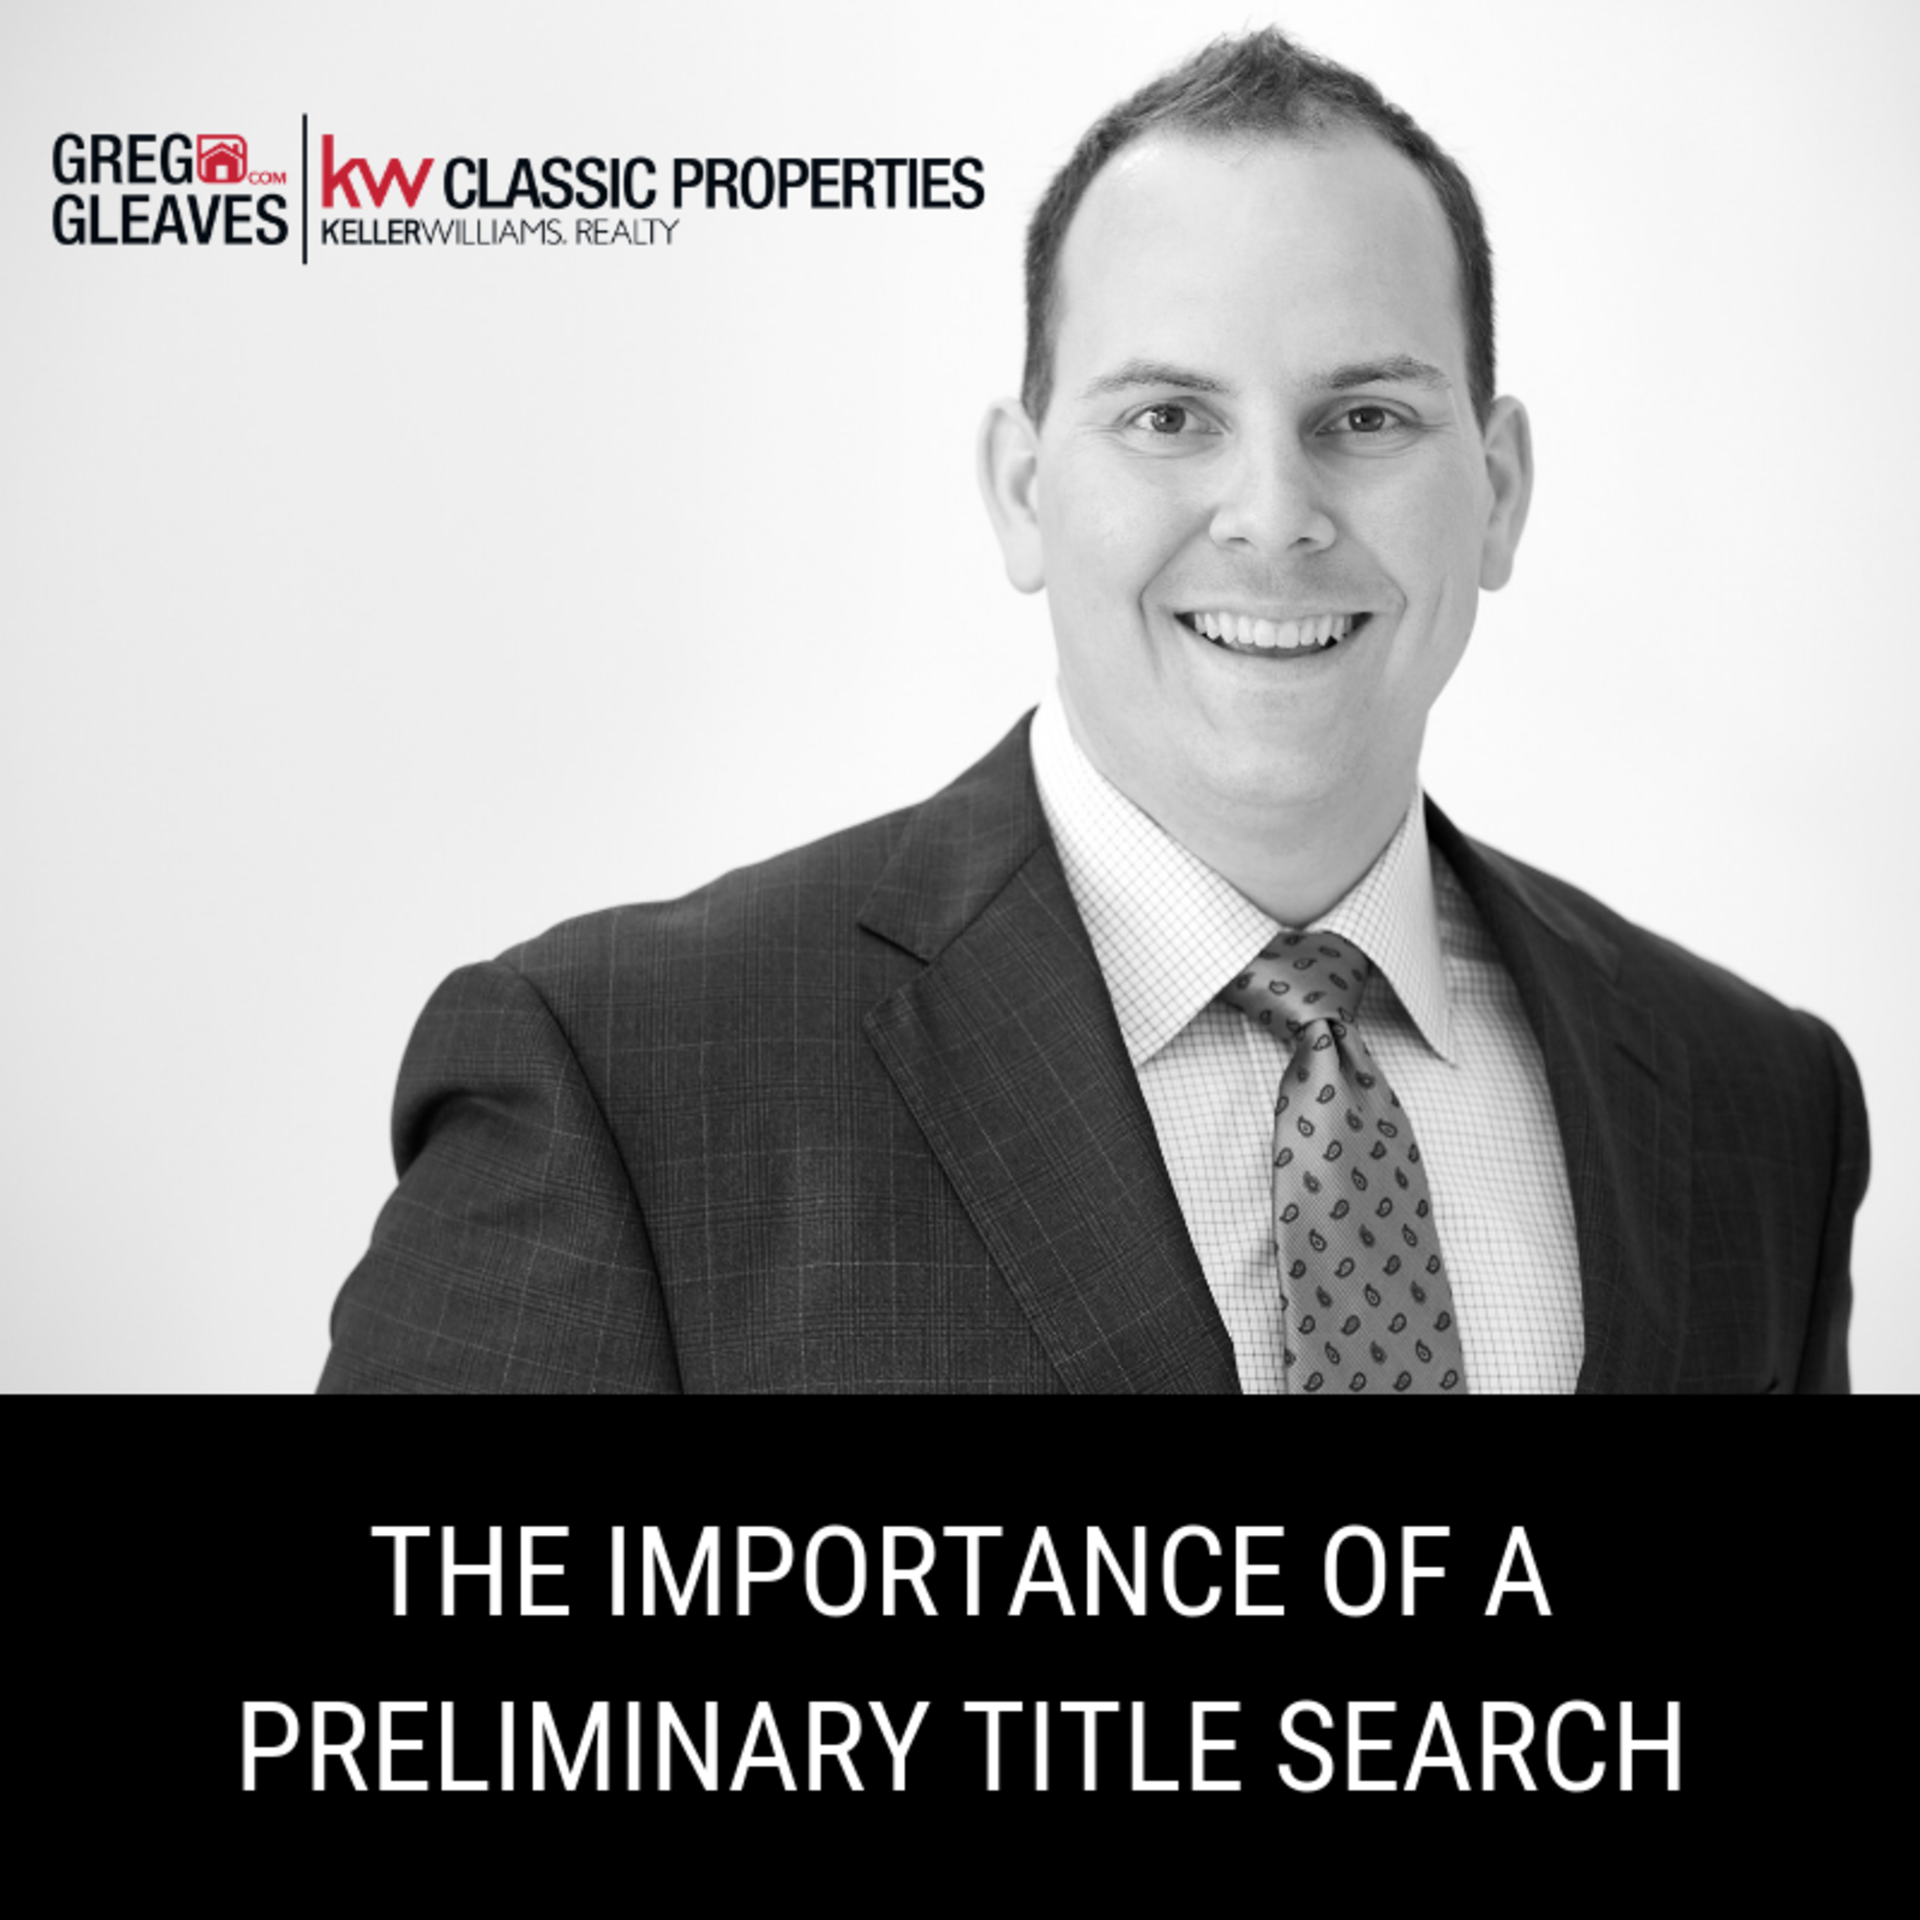 The Importance Of A Preliminary Title Search